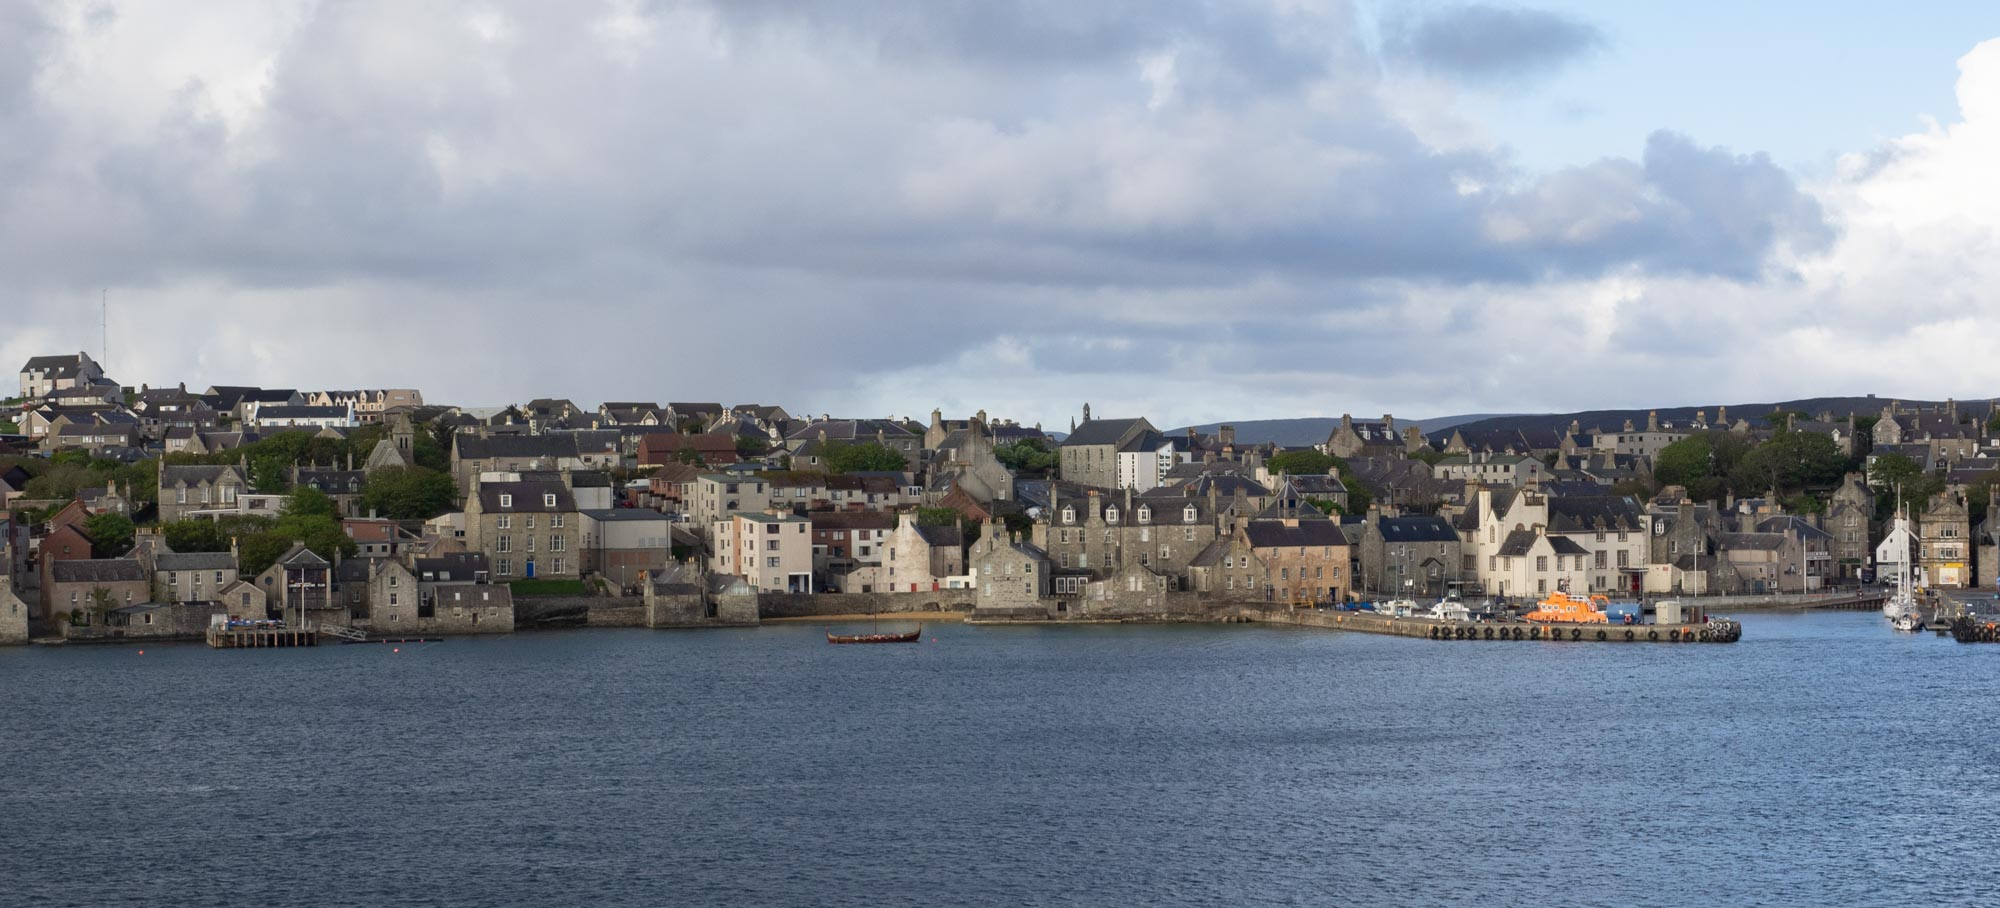 Lerwick, population 7000, is the only town in Shetland and the most northerly town in the British Isles. At 60.15N, it's about the same latitude as Helsinki (Finland) and Anchorage (Alaska). The equivalent distance from the equator in the southern hemisphere is way, way south of Macquarie Island (54.37S)!